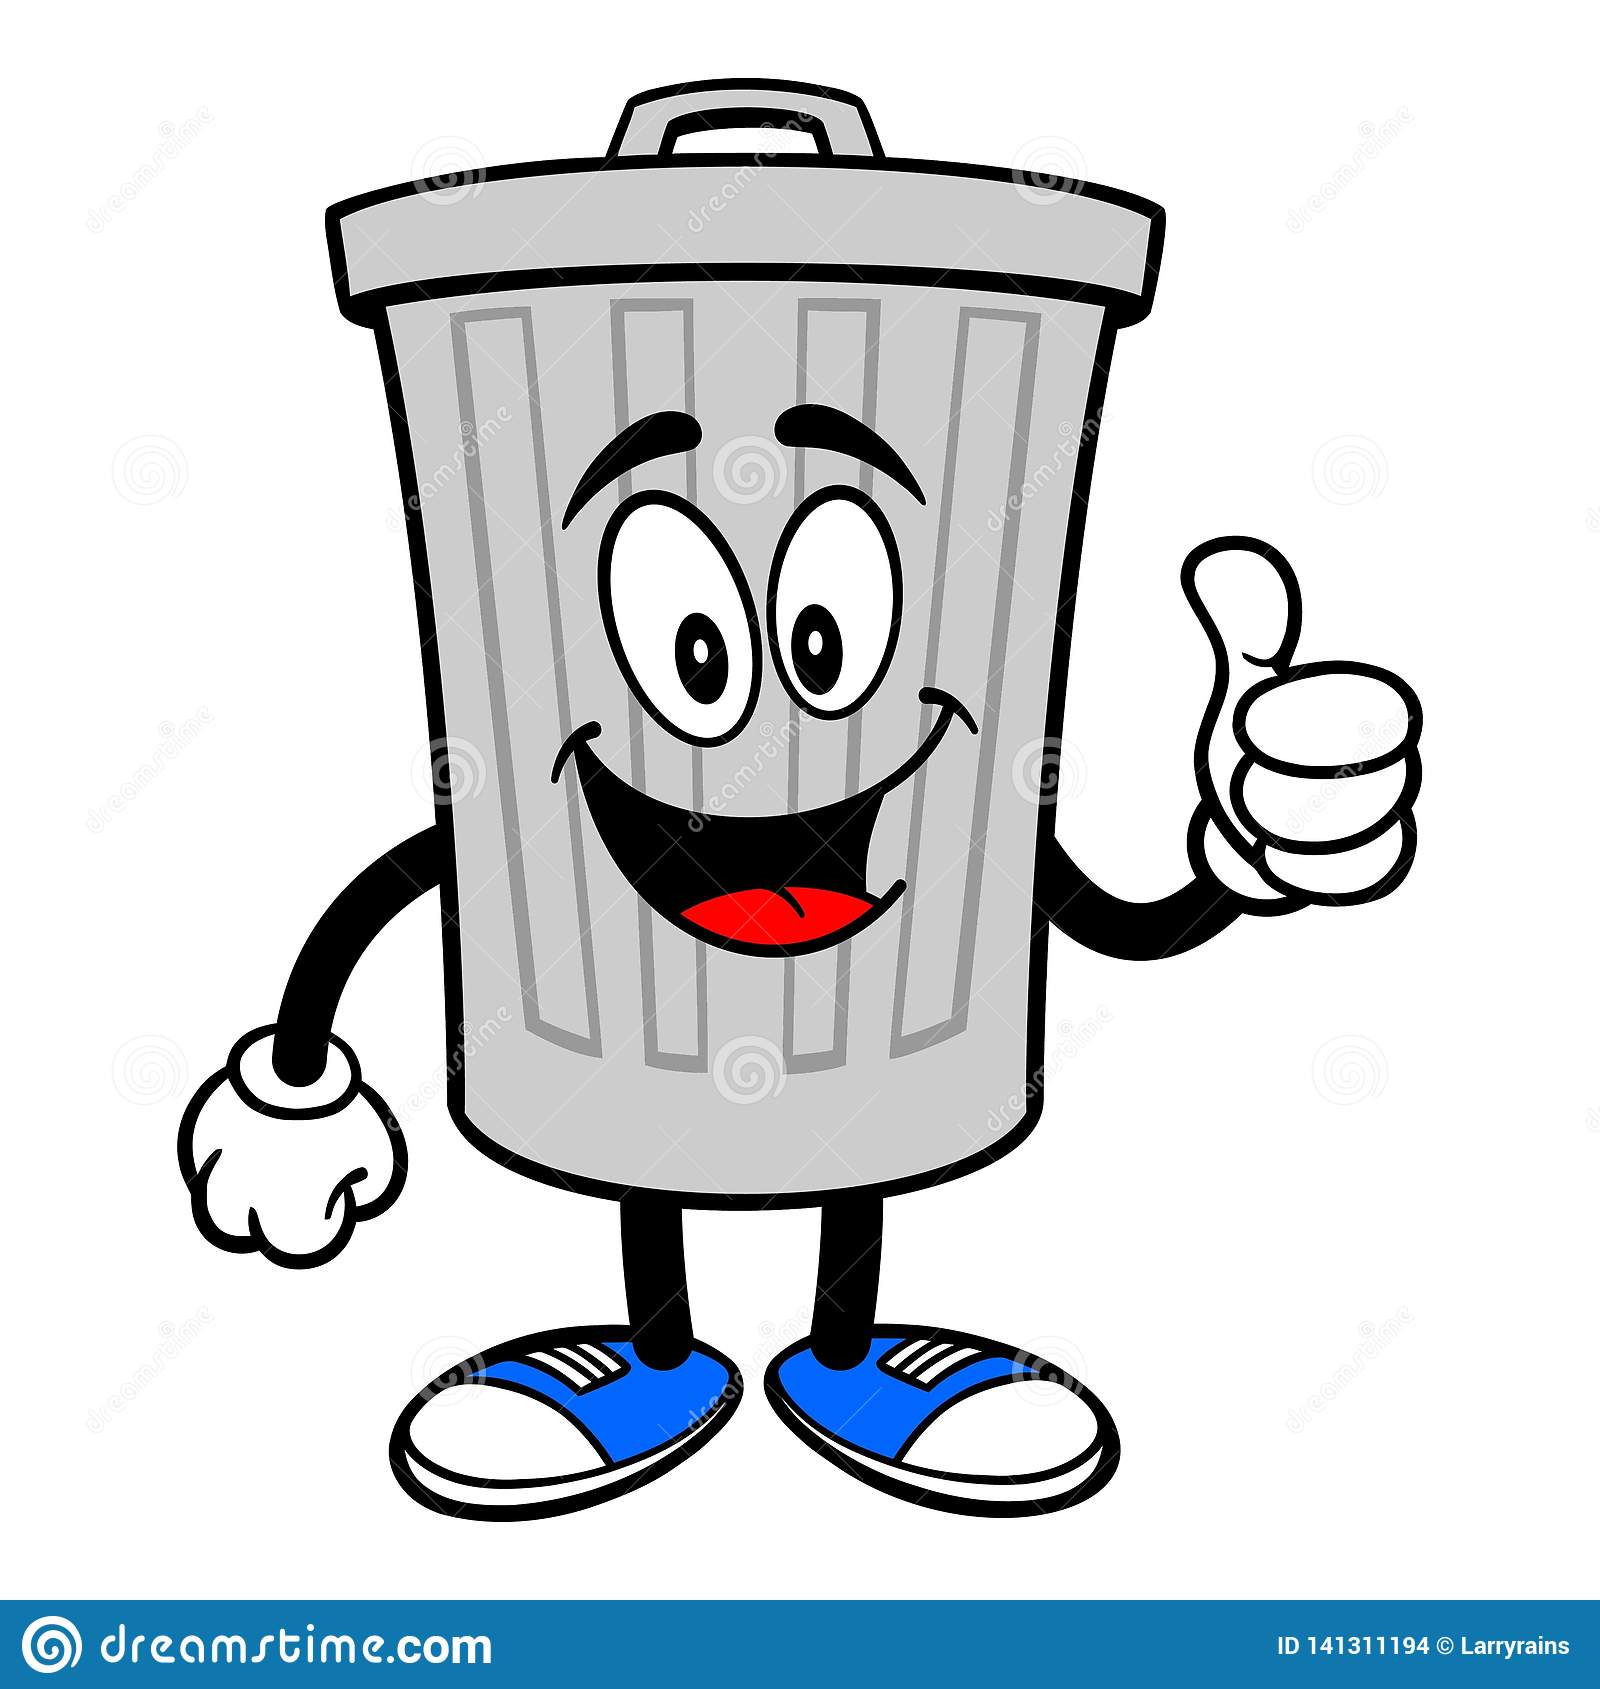 Trash Can Mascot With Thumbs Up Stock Vector Illustration Of